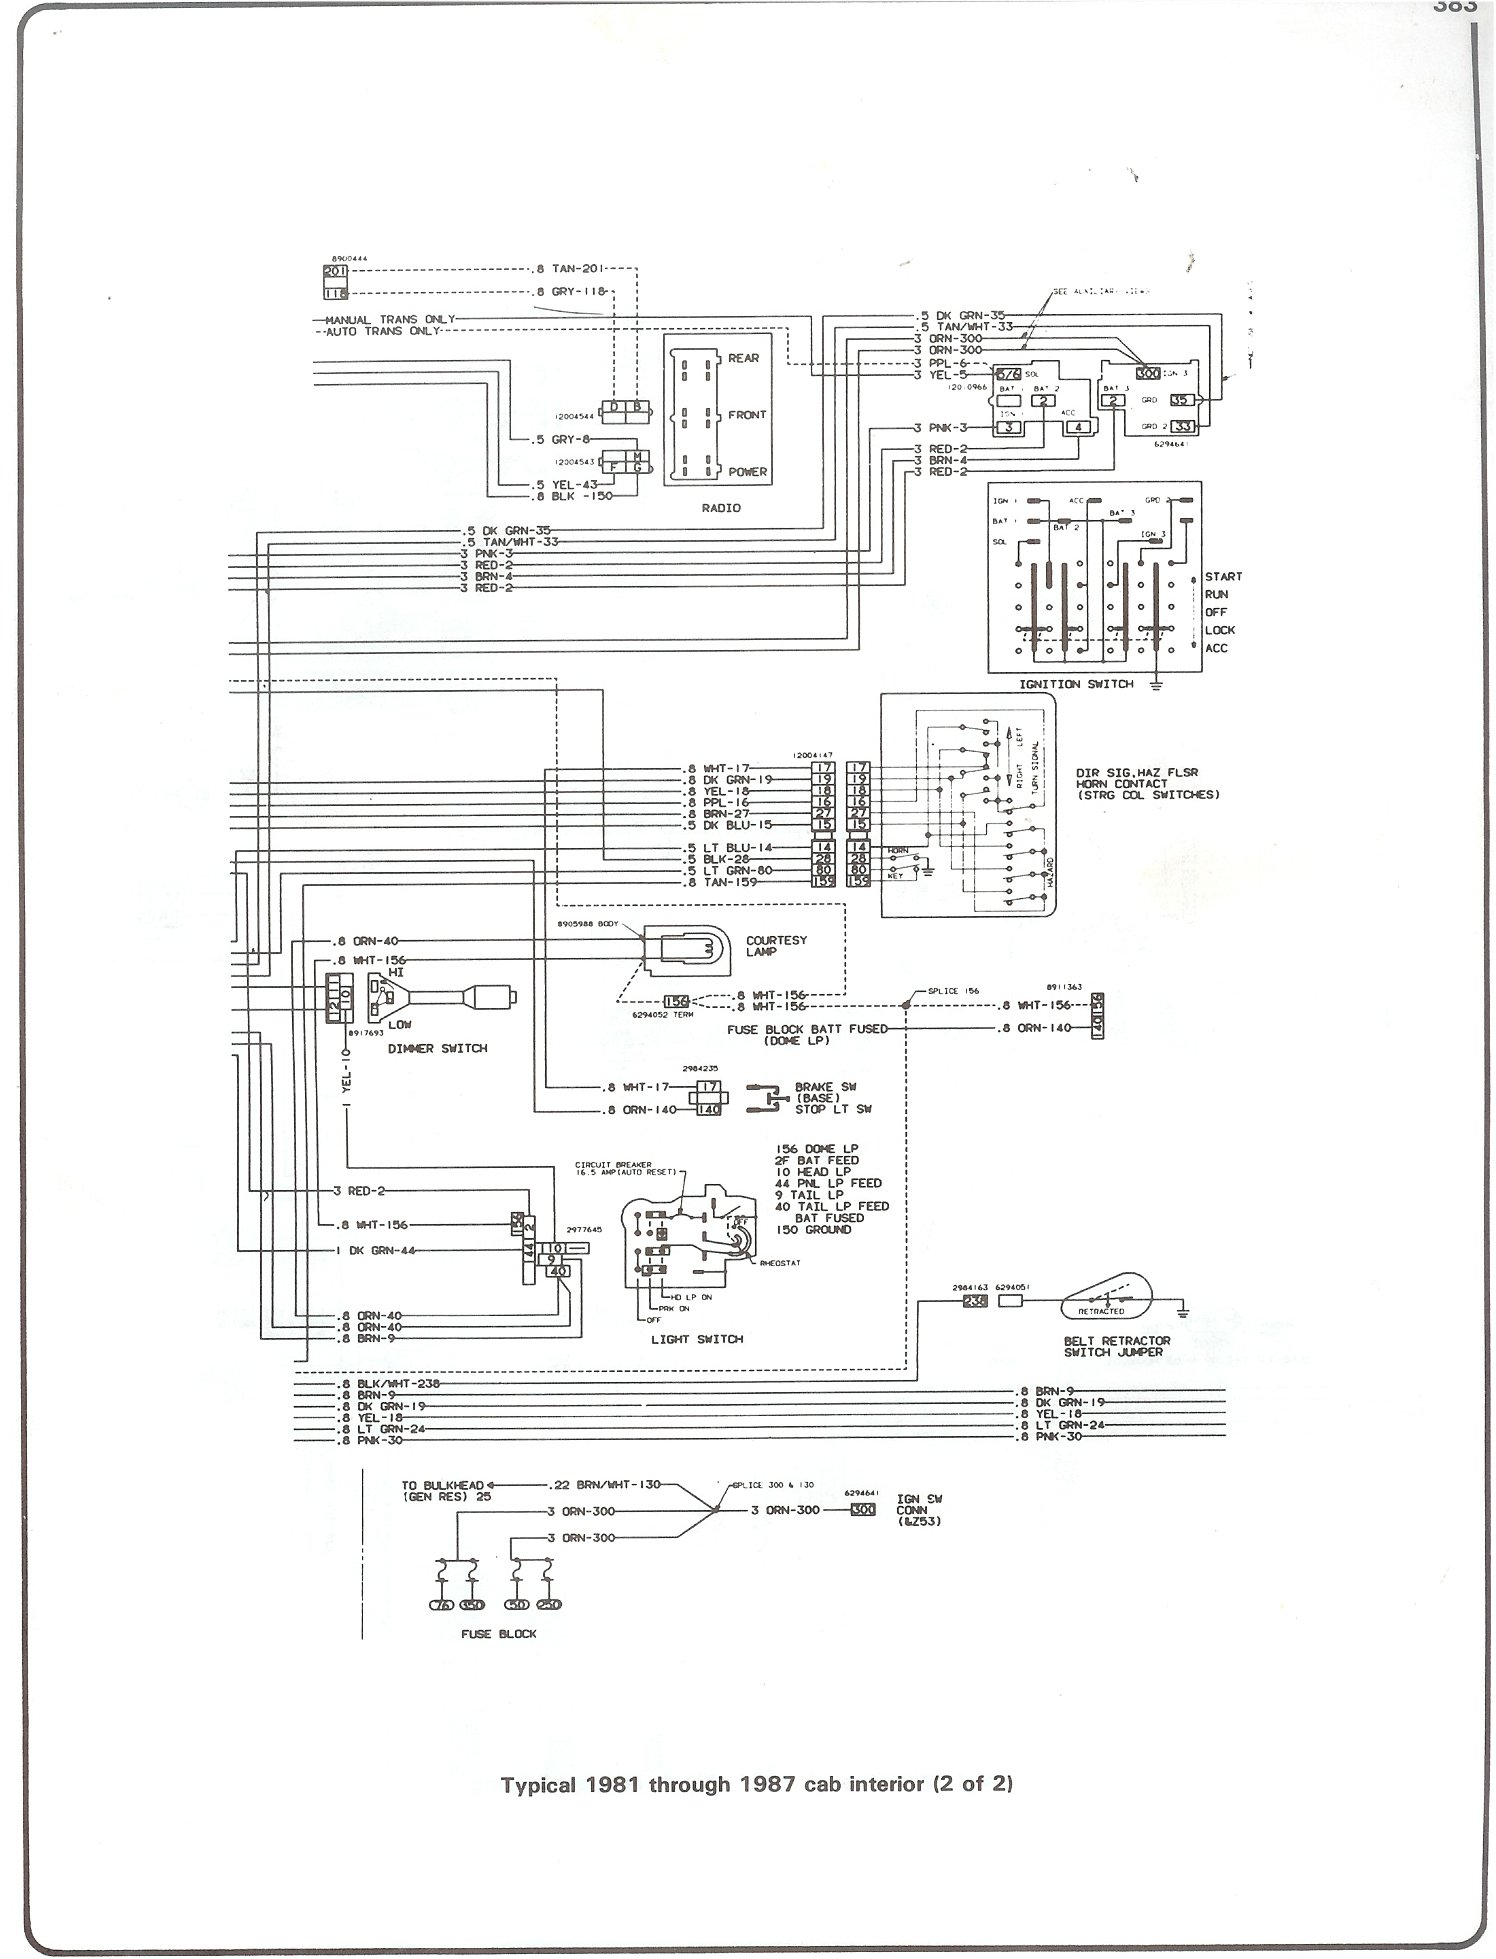 1996 Chevrolet Blazer furthermore 11 furthermore 57 Chevy Car Wiring Diagram together with 85 Chevy Cavalier Starter Wiring Diagram besides MPGuino. on 96 chevy wiring diagram